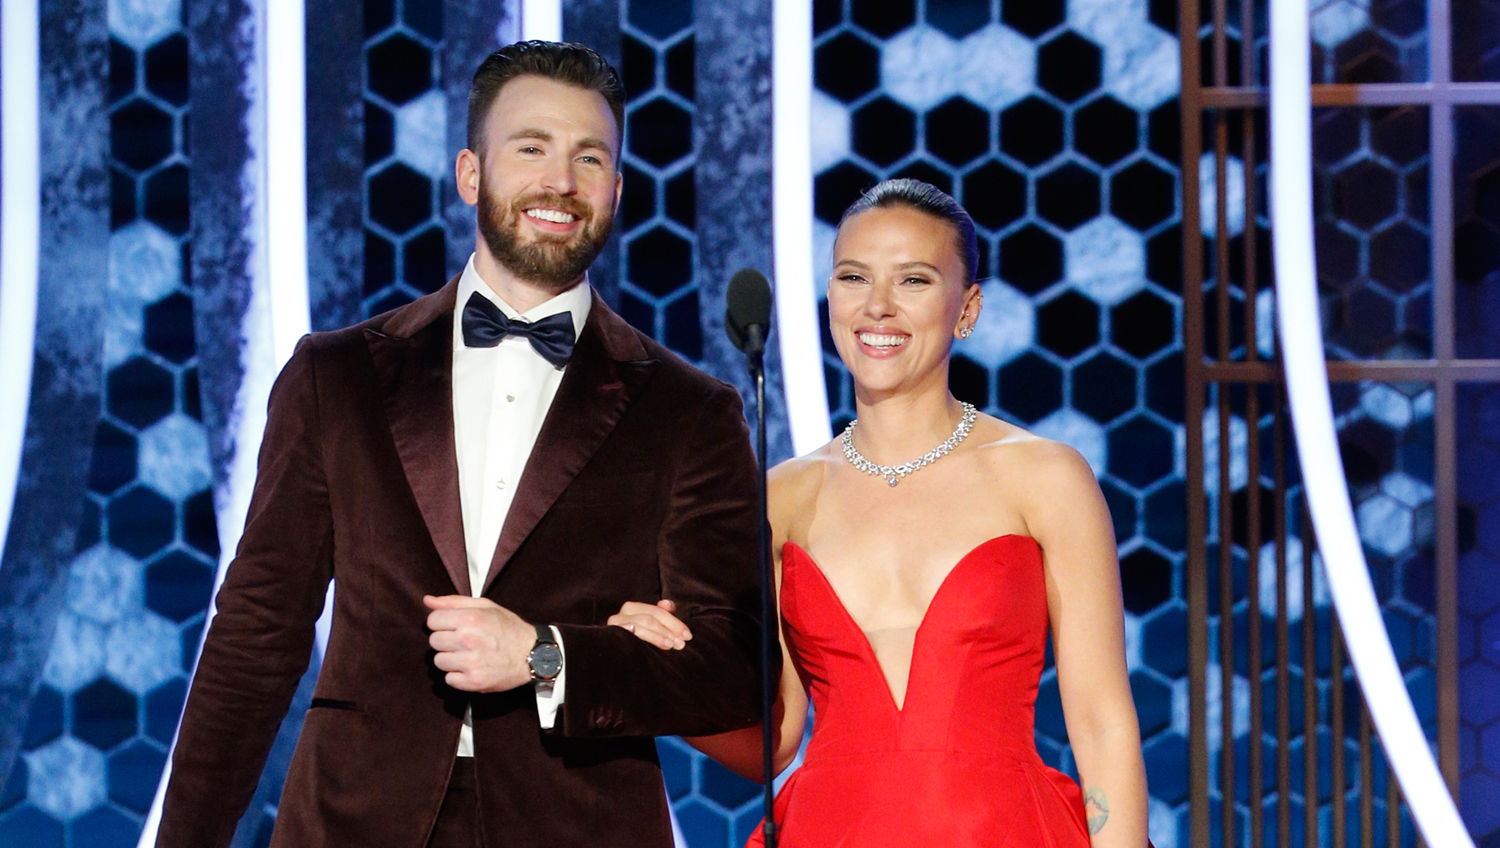 Chris Evans Helps Scarlett Johansson With Her Dress During Off Camera Golden Globes 2020 Moment 2020 Golden Globes Chris Evans Golden Globes Scarlett Johansson Just Jared